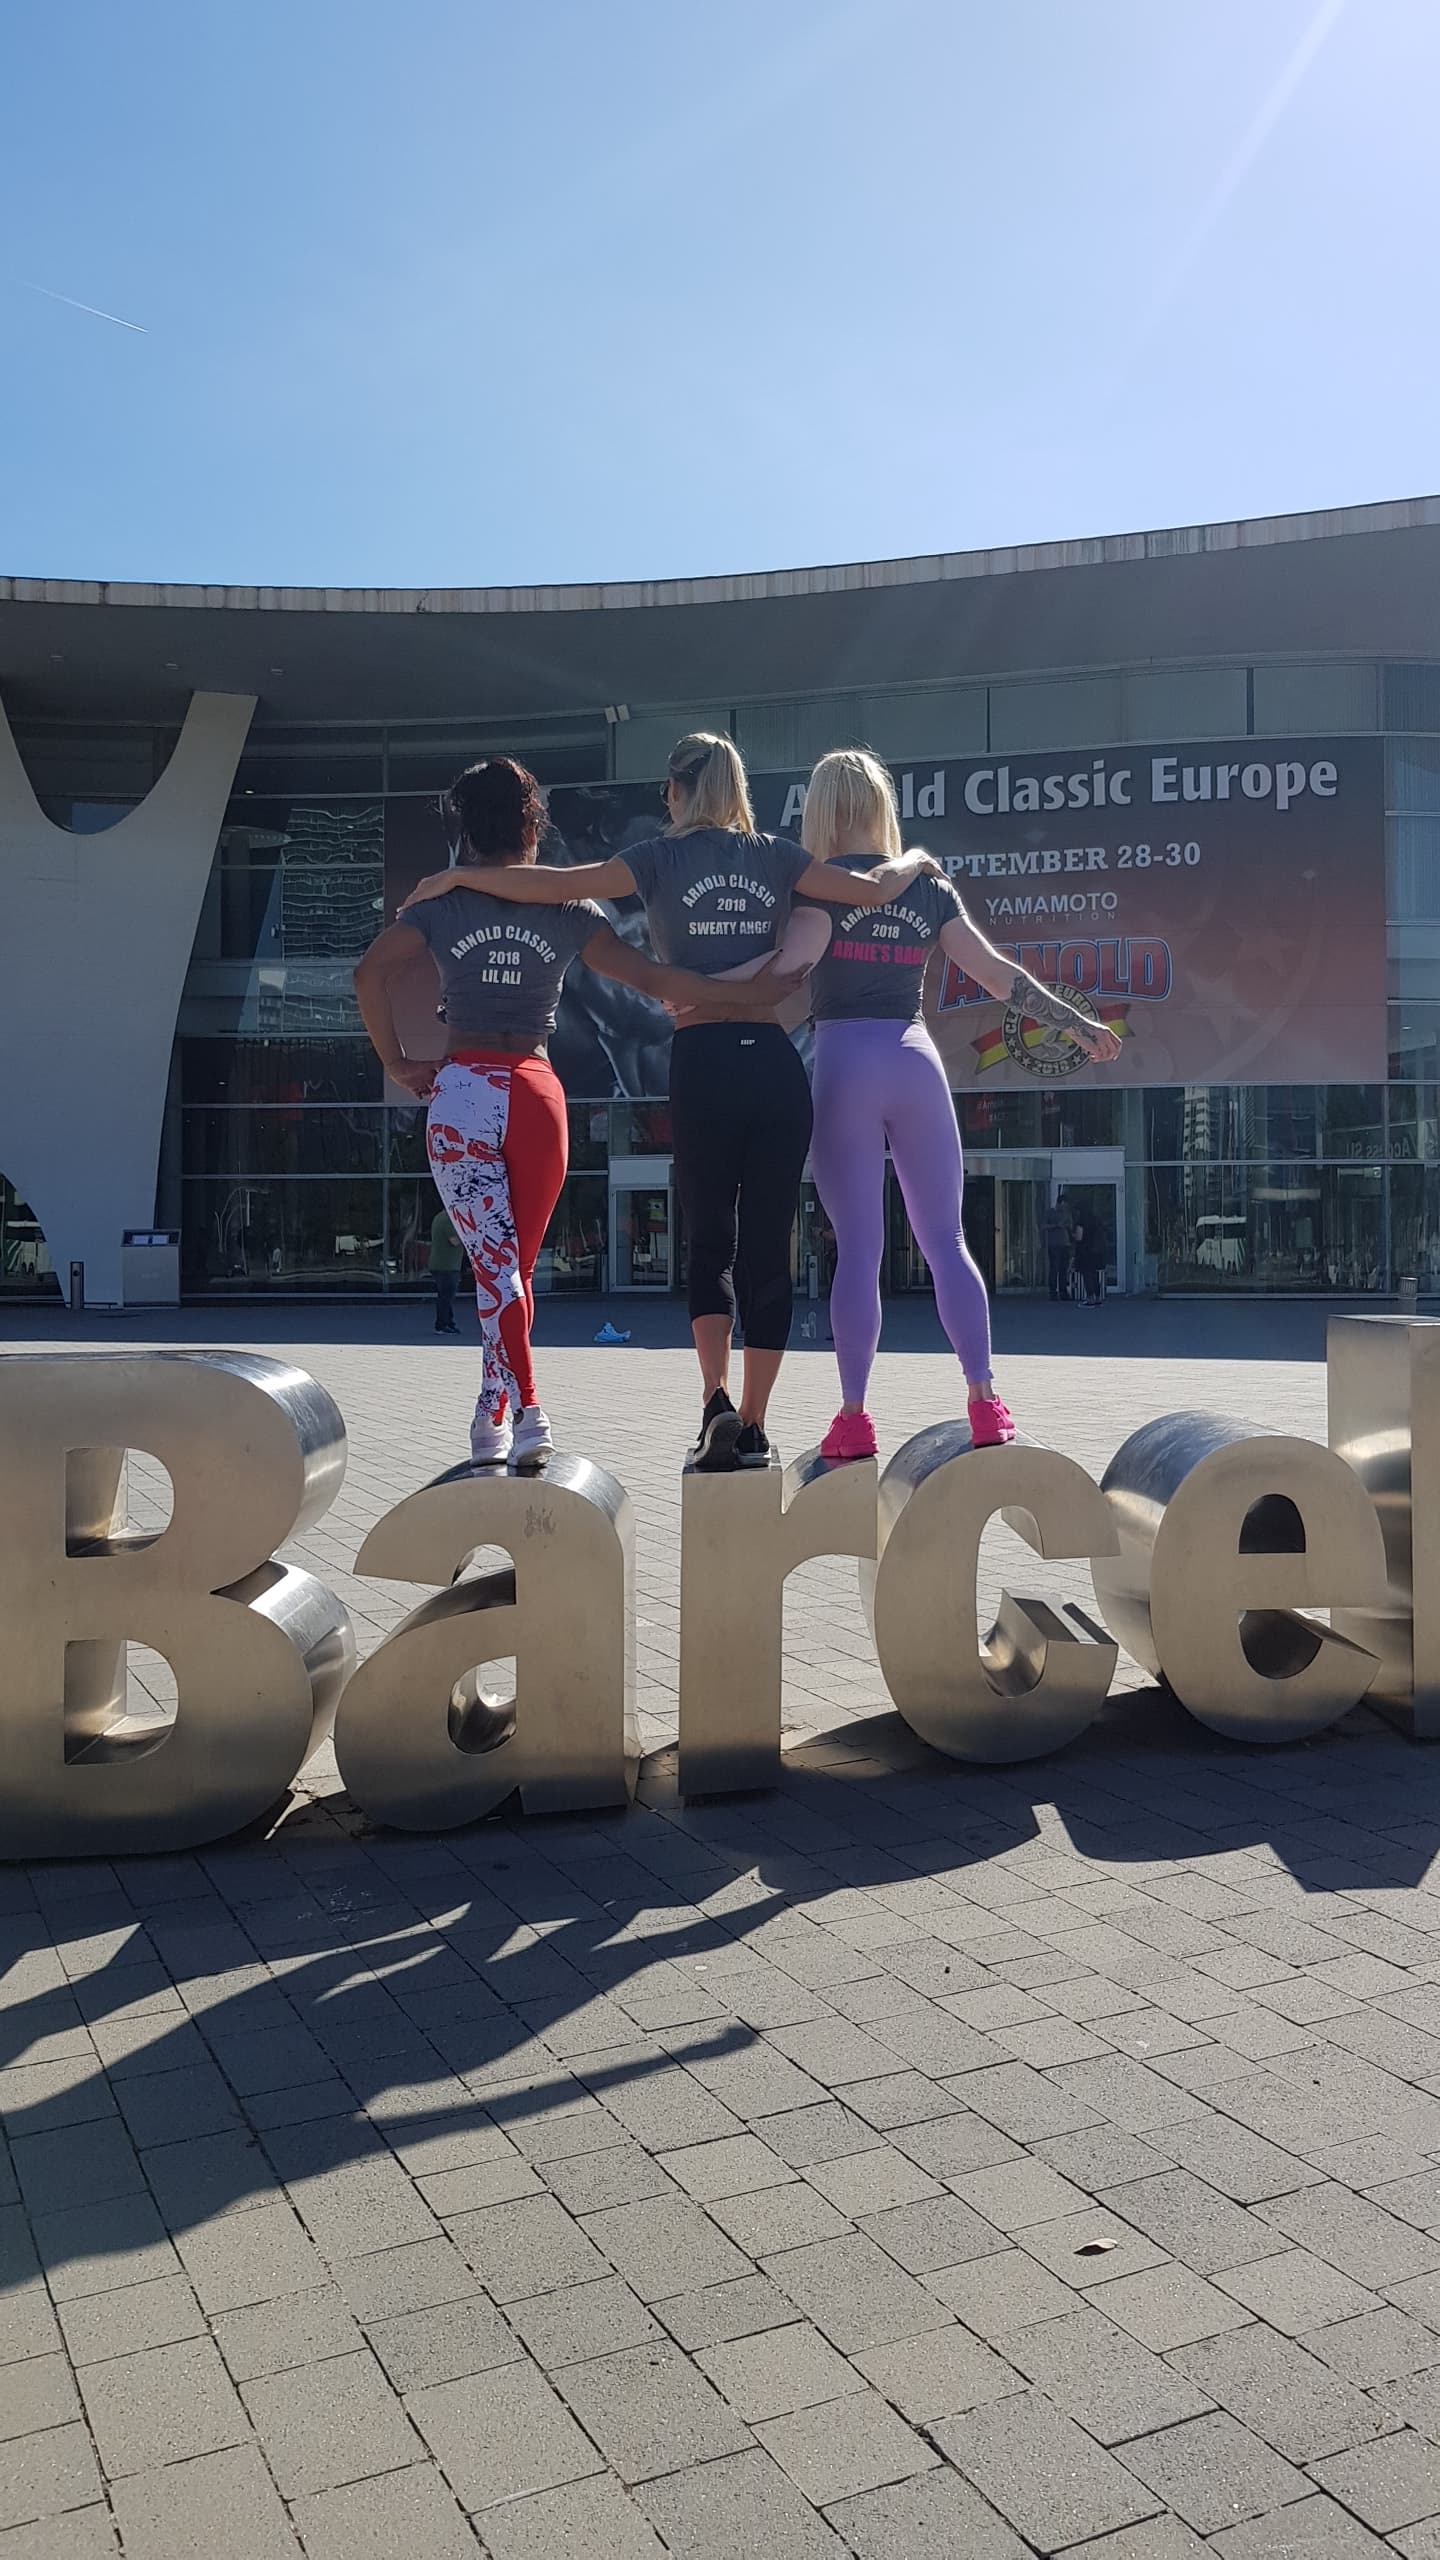 Team UKBFF athletes Alison Fernandes (left), Becky Goodall (centre) and Mel Maguire have fun at the venue,